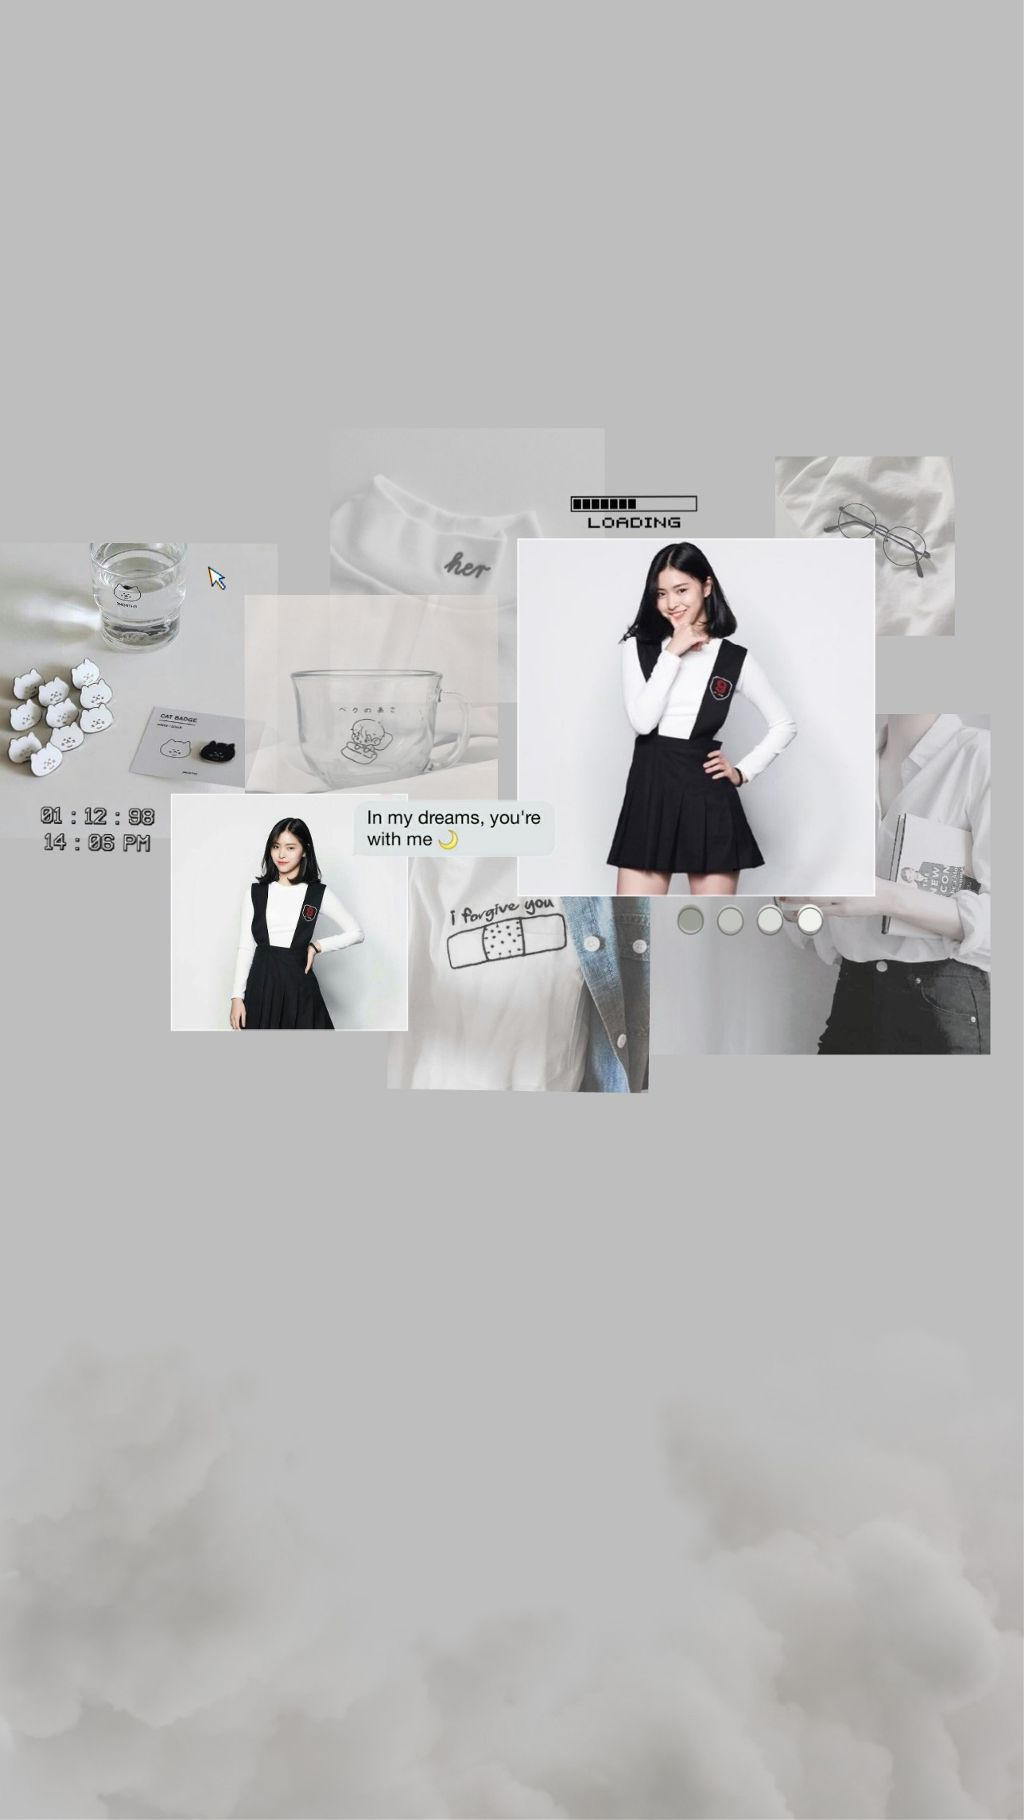 Ryujin Wallpaper Itzy Ryujin Wallpaper Kpop Kpopwallpap